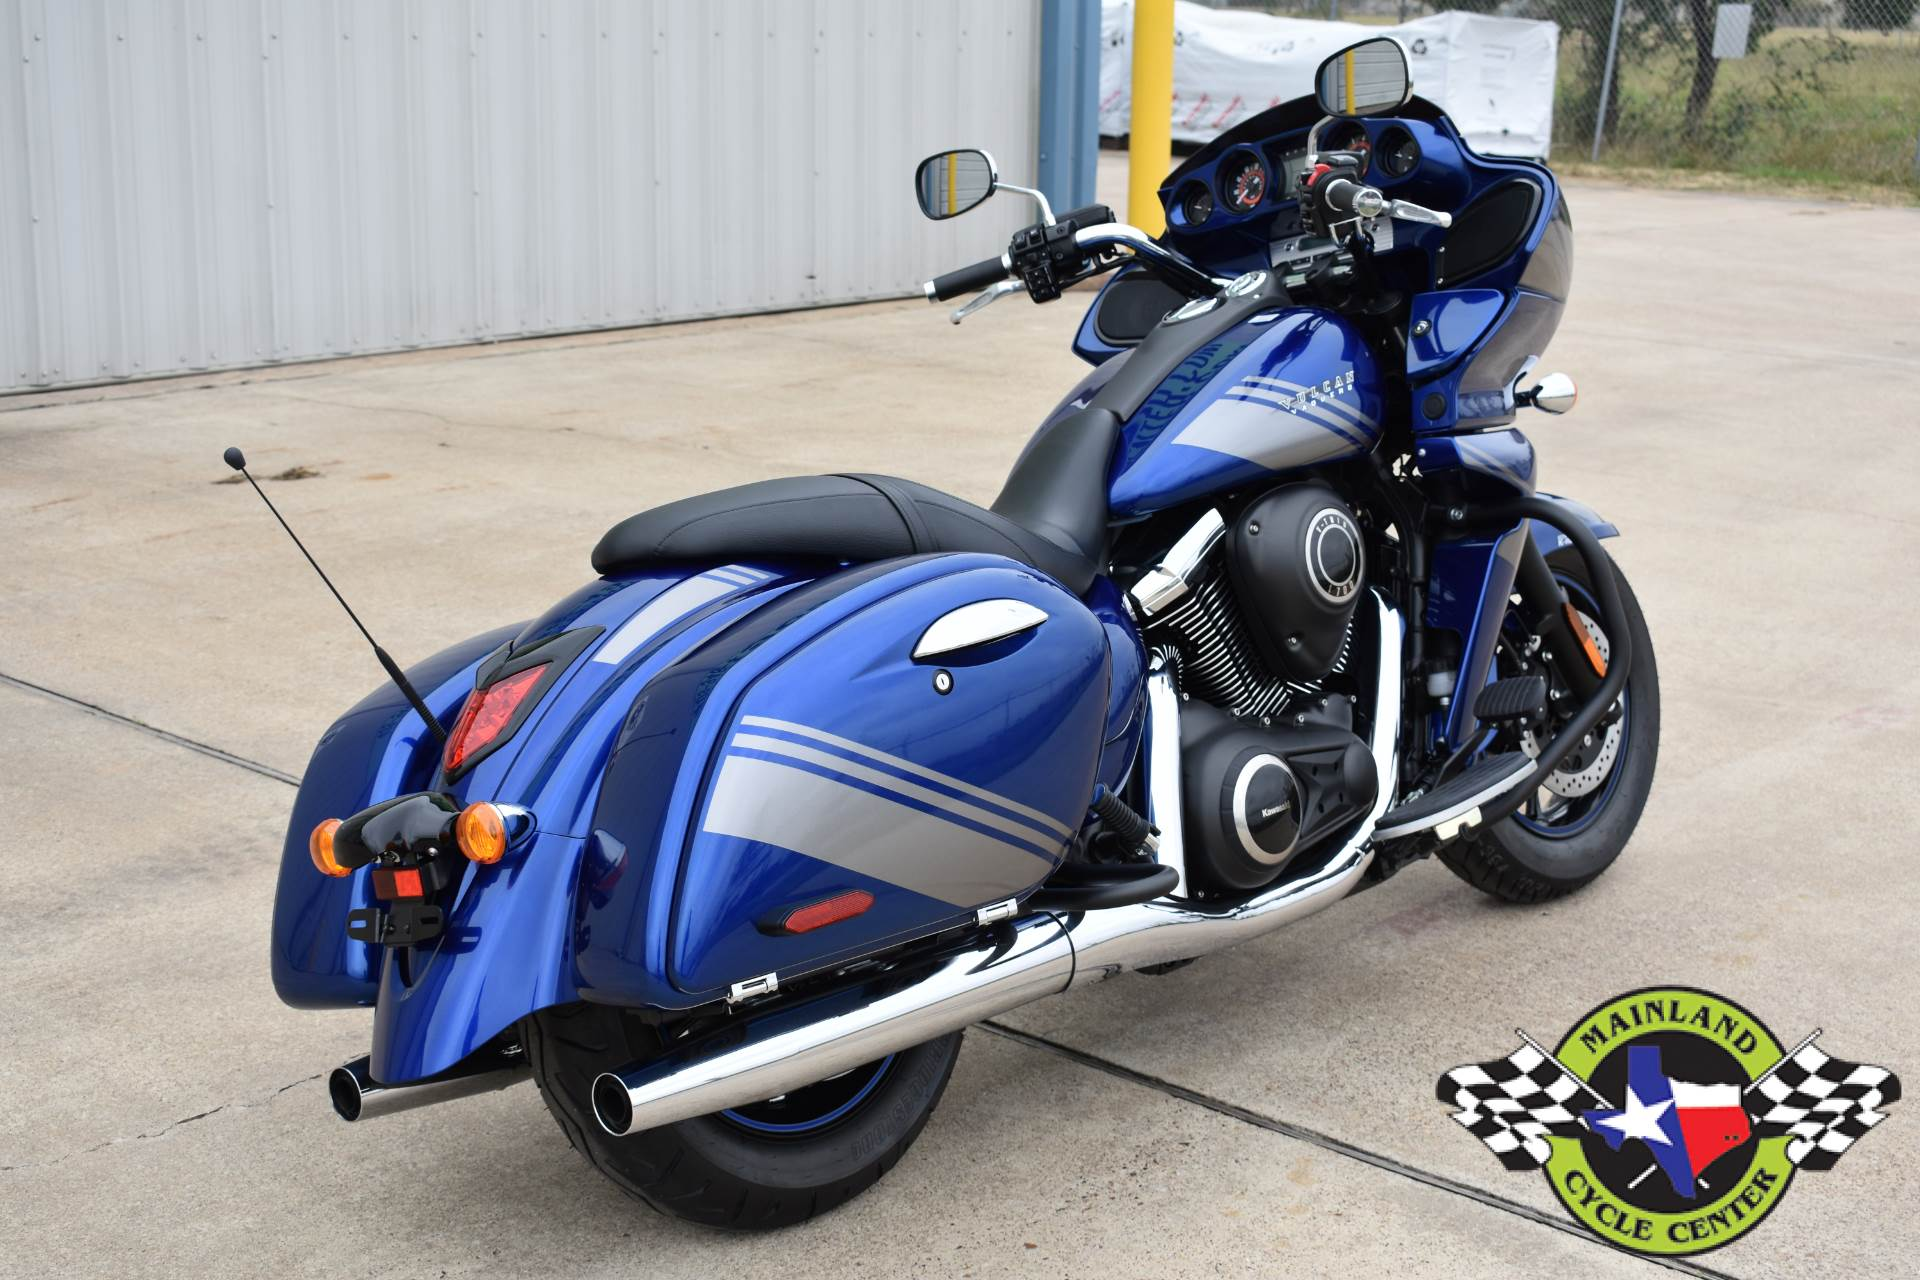 2020 Kawasaki Vulcan 1700 Vaquero ABS in La Marque, Texas - Photo 3